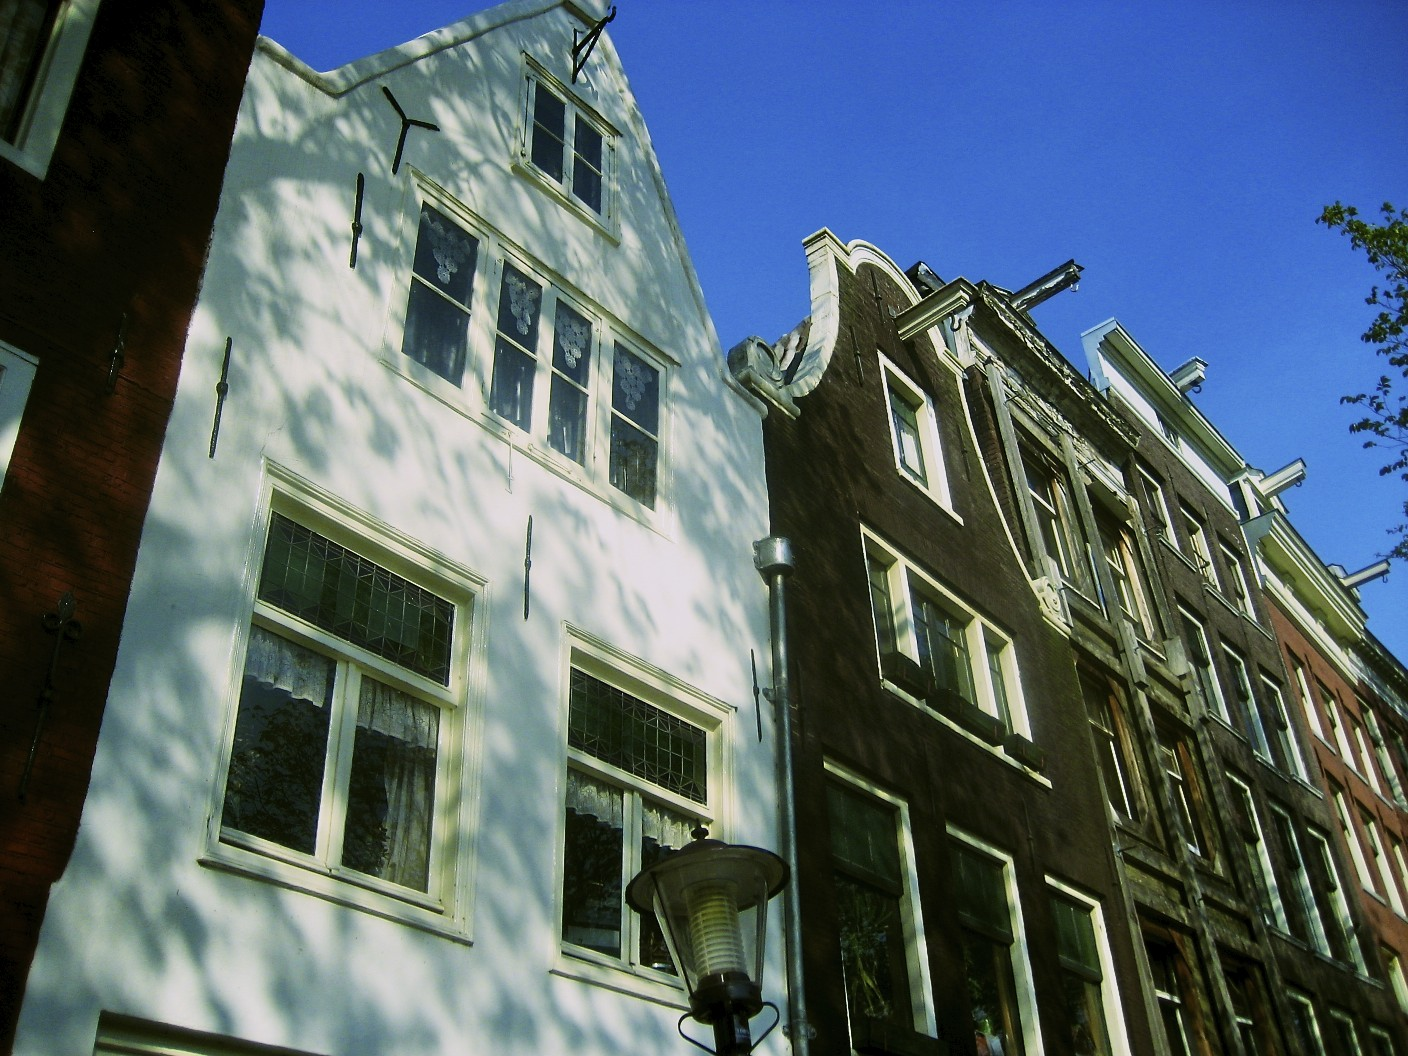 Amsterdam: houses loom over a canal